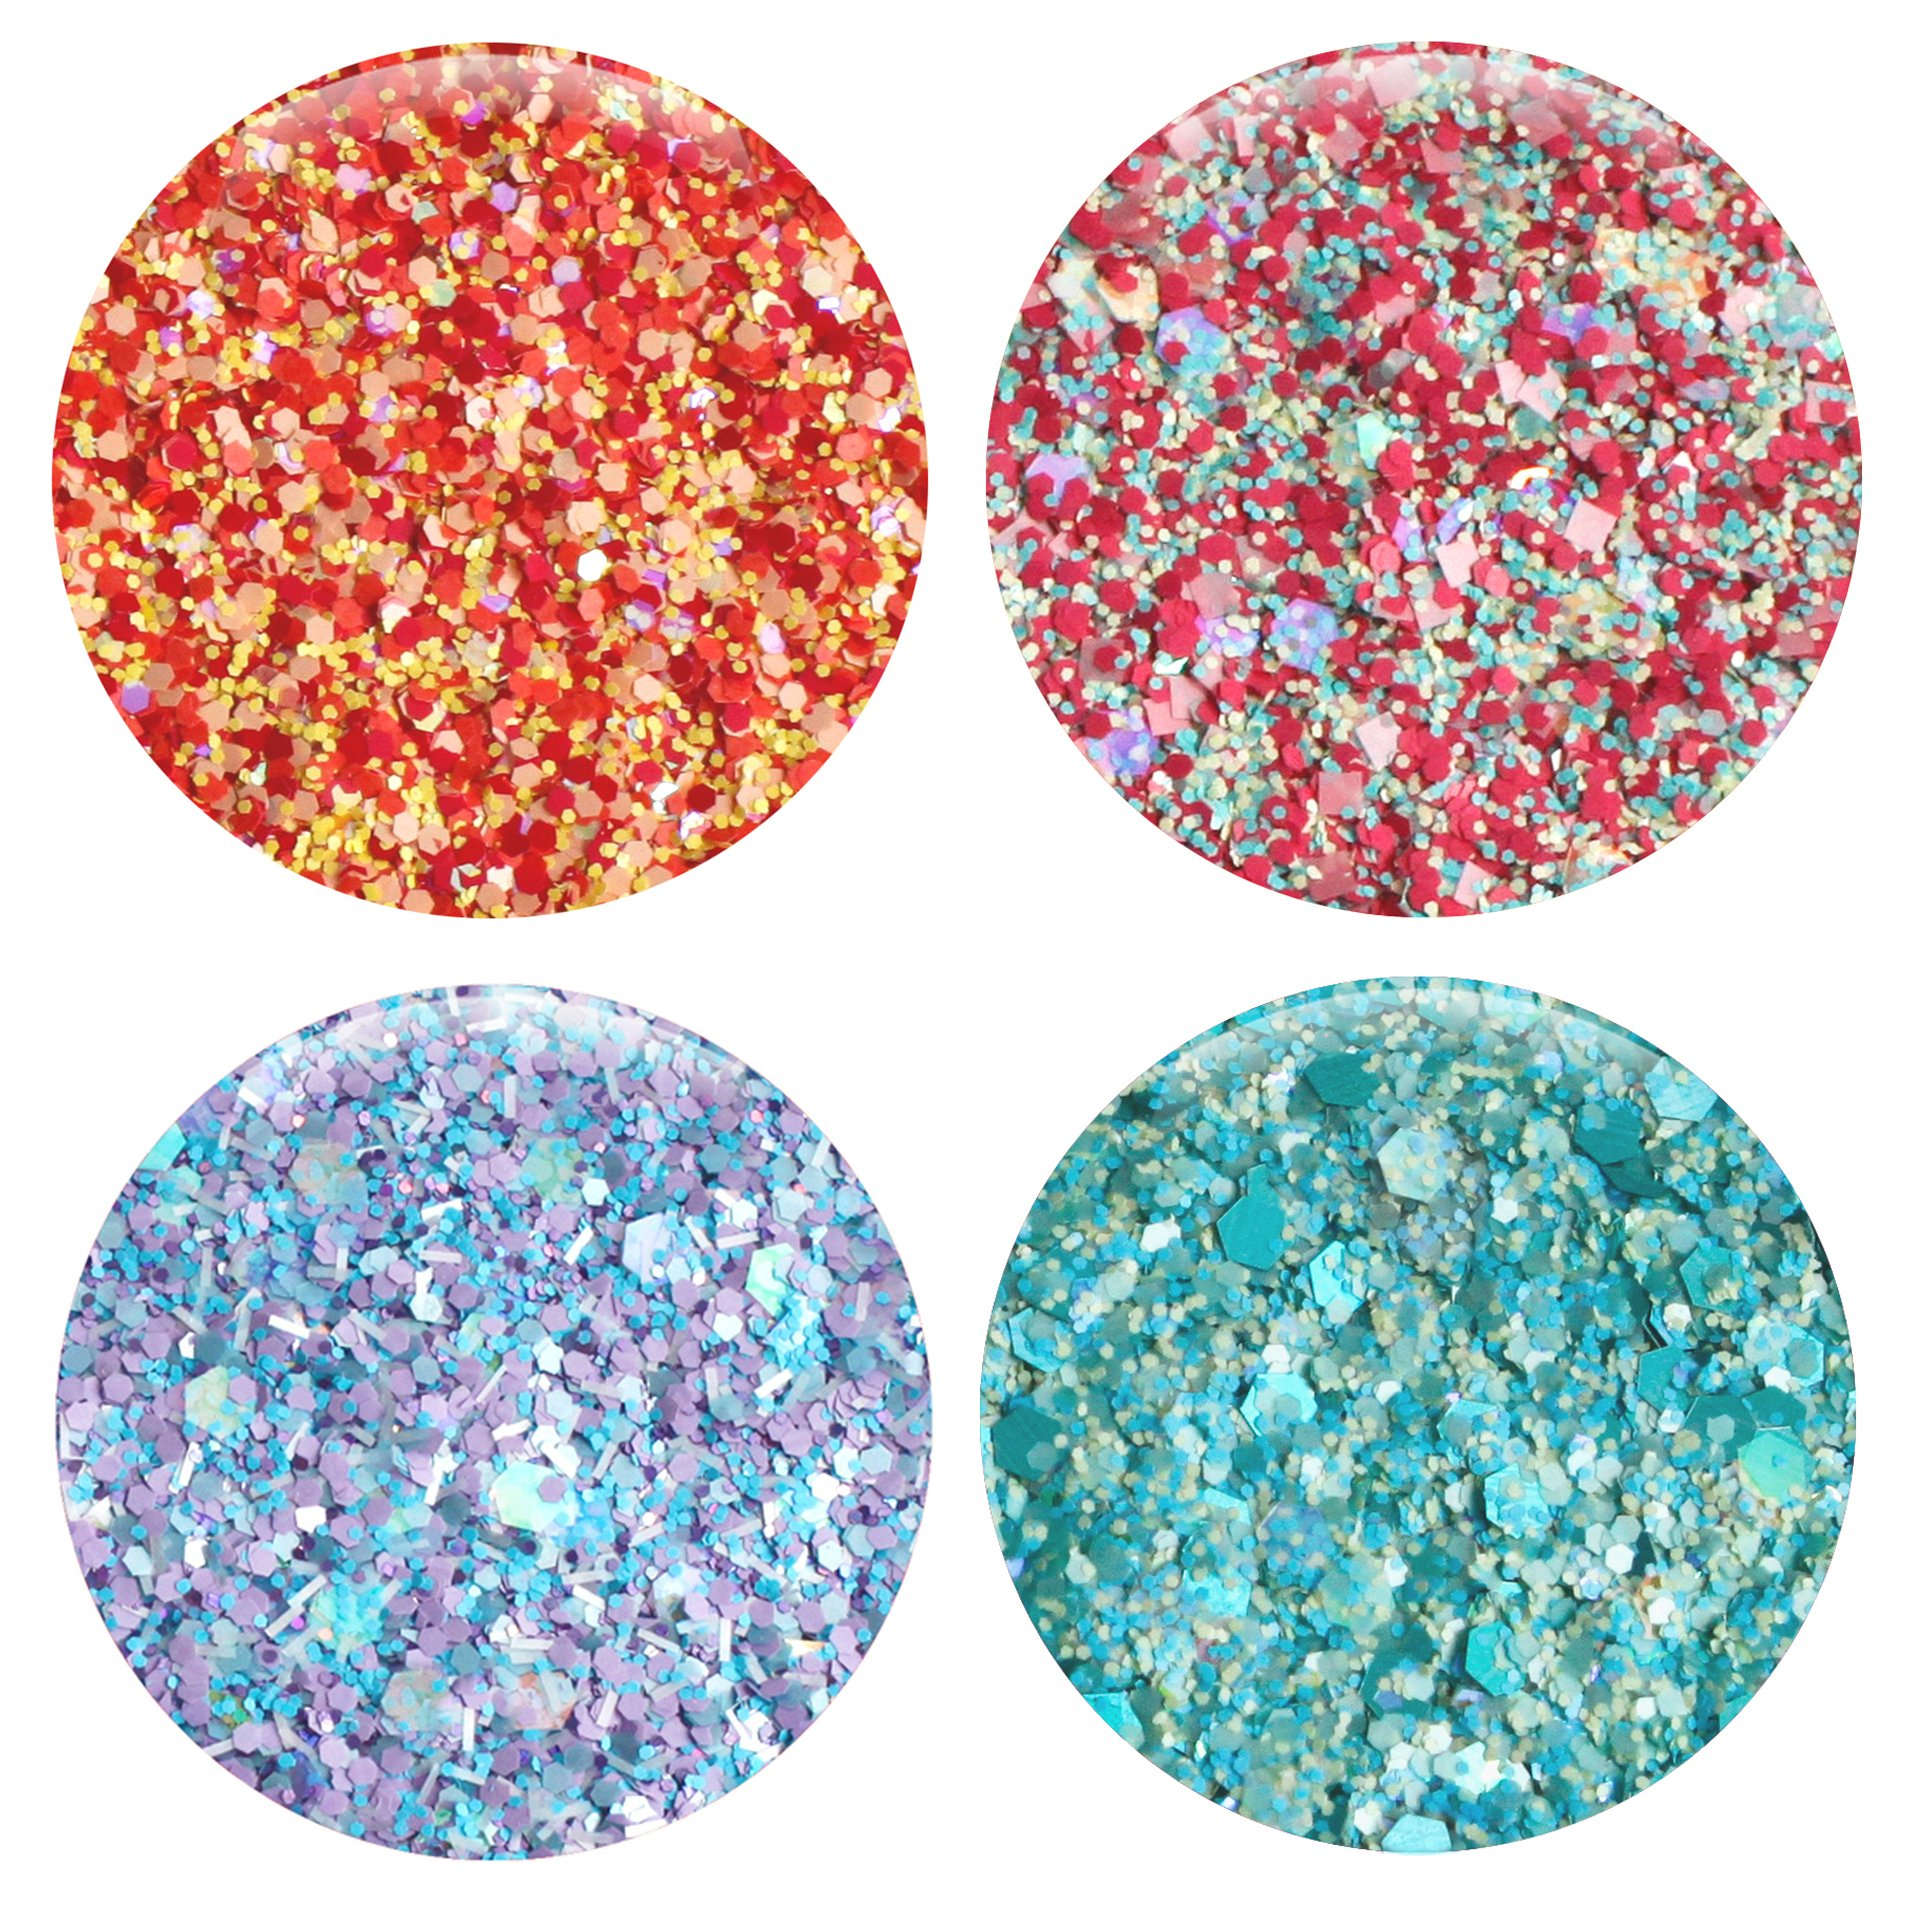 Mixed Glitter 20 Piece Kit - Includes Solvent Resistant Dust, Powder, Hexagon, Holographic, Matte Glitters - Great for Nail Art Polish, Gels, Art and Crafts, Paints & Acrylics Supplies - 1/4 OZ Jars by Glitties (Image #2)